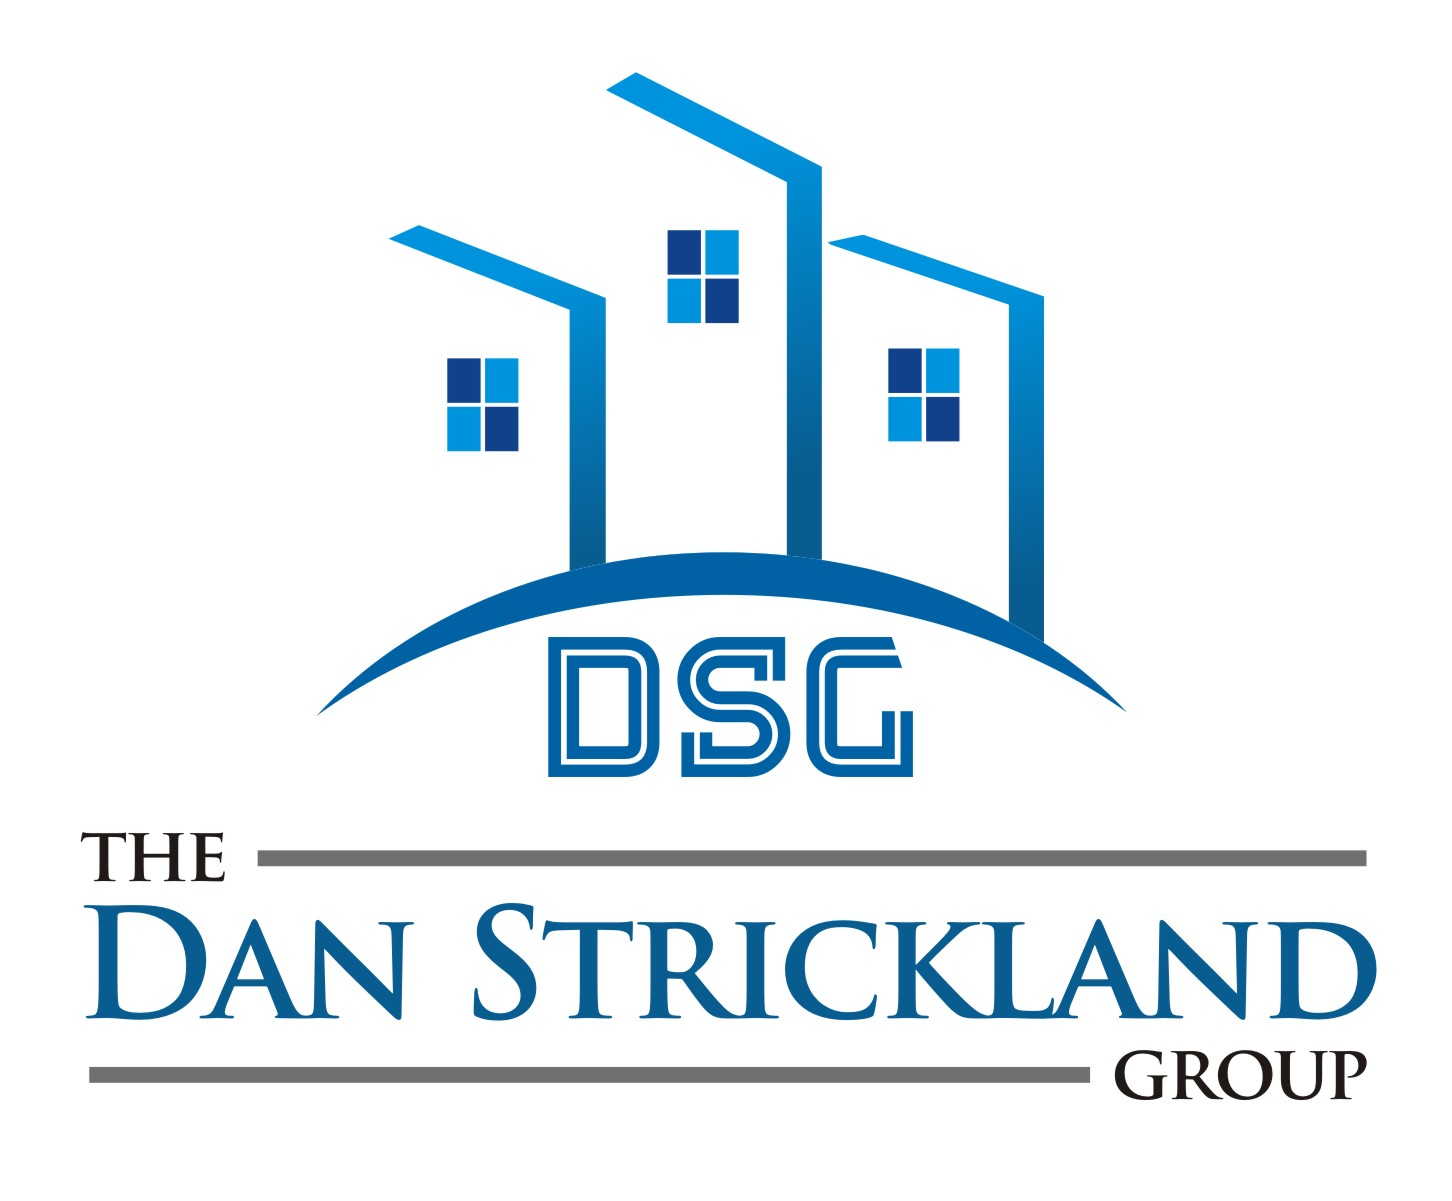 Logo Design by Arief Zuhud Romdhon - Entry No. 264 in the Logo Design Contest Creative Logo Design for The Dan Strickland Group.